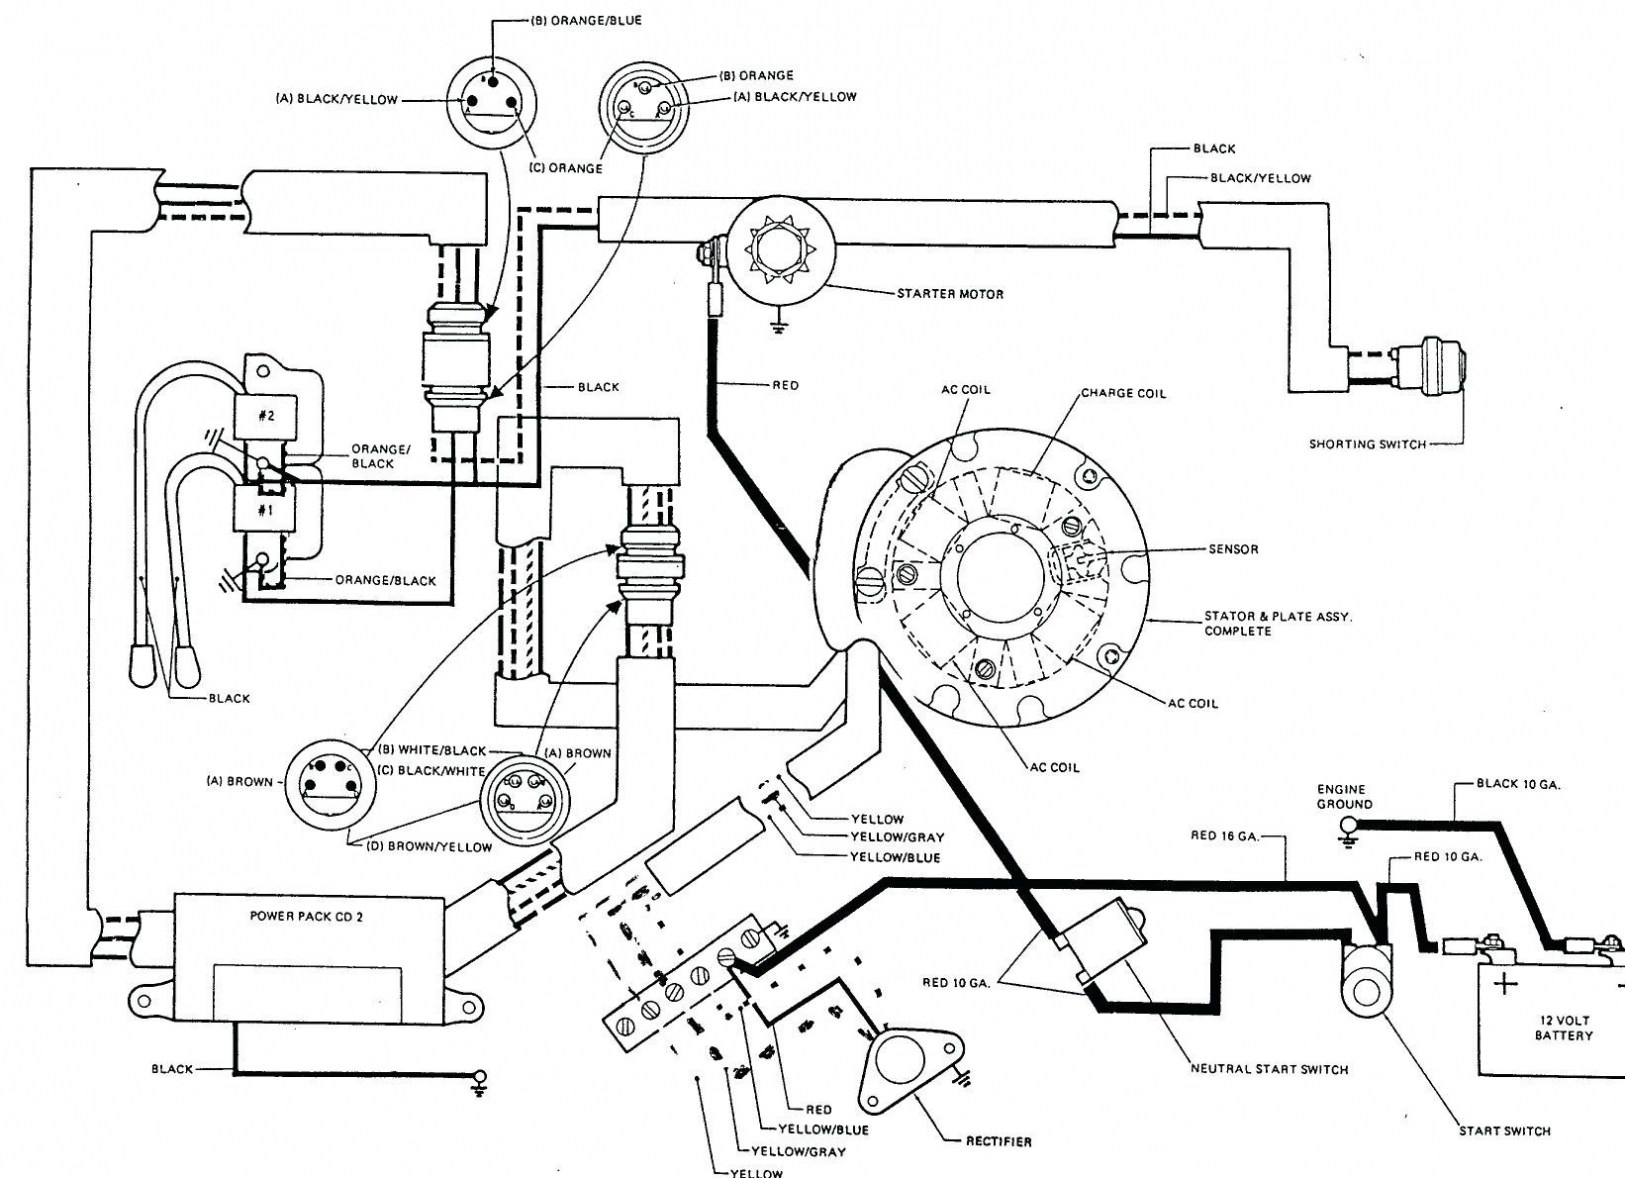 Yamaha 40 Outboard Wiring Diagram | Wiring Diagram - Yamaha Outboard Wiring Diagram Pdf